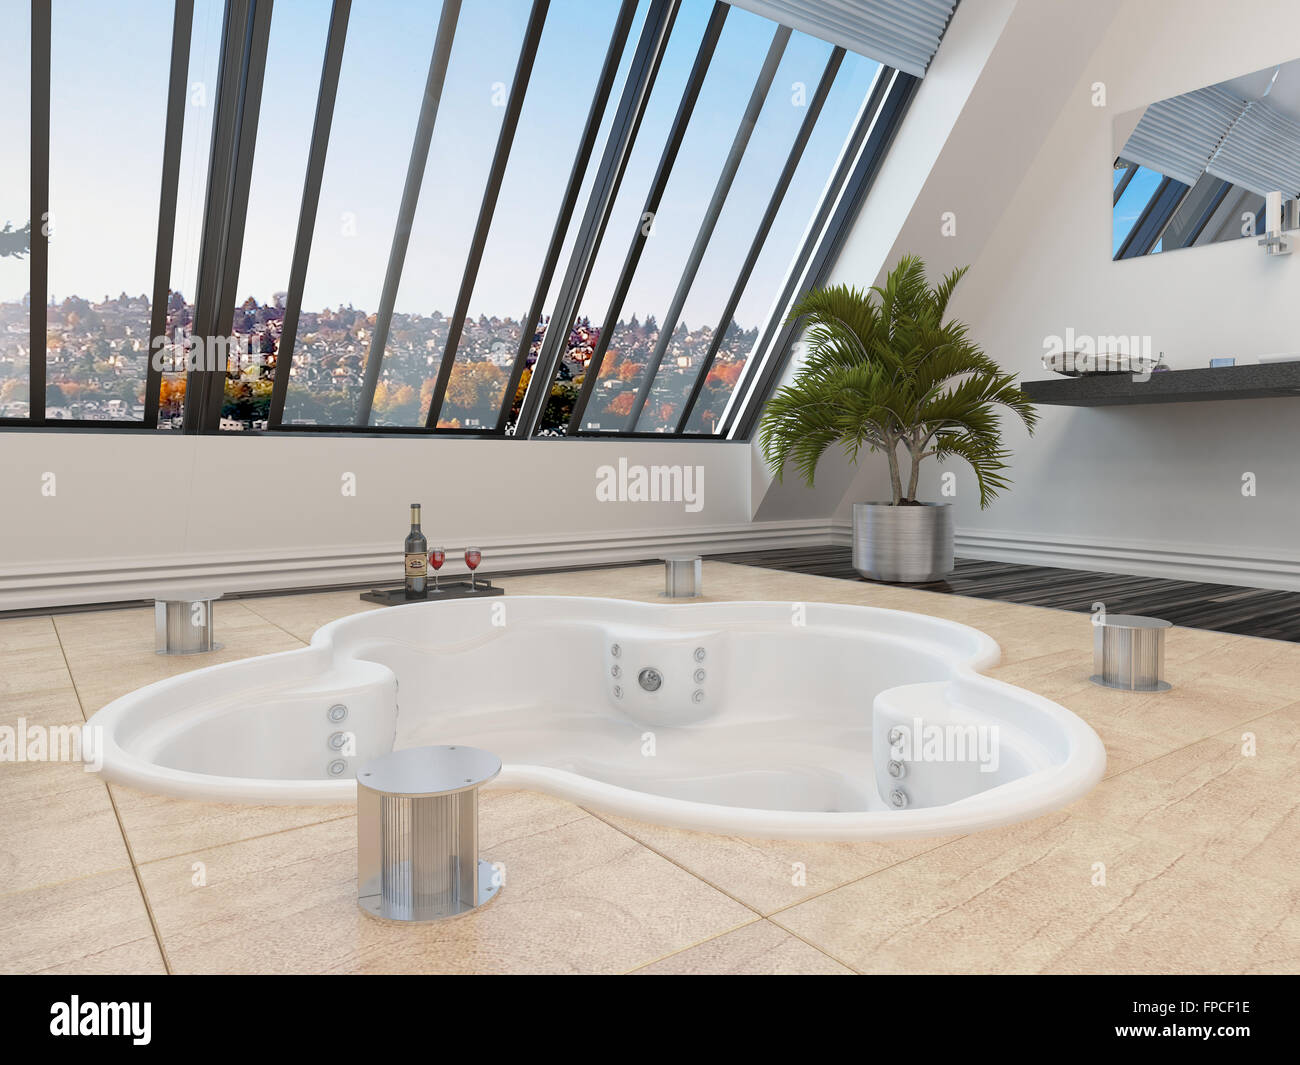 Sunken Trefoil Shaped Hot Tub Or Spa Bath In A Modern Bathroom Stock